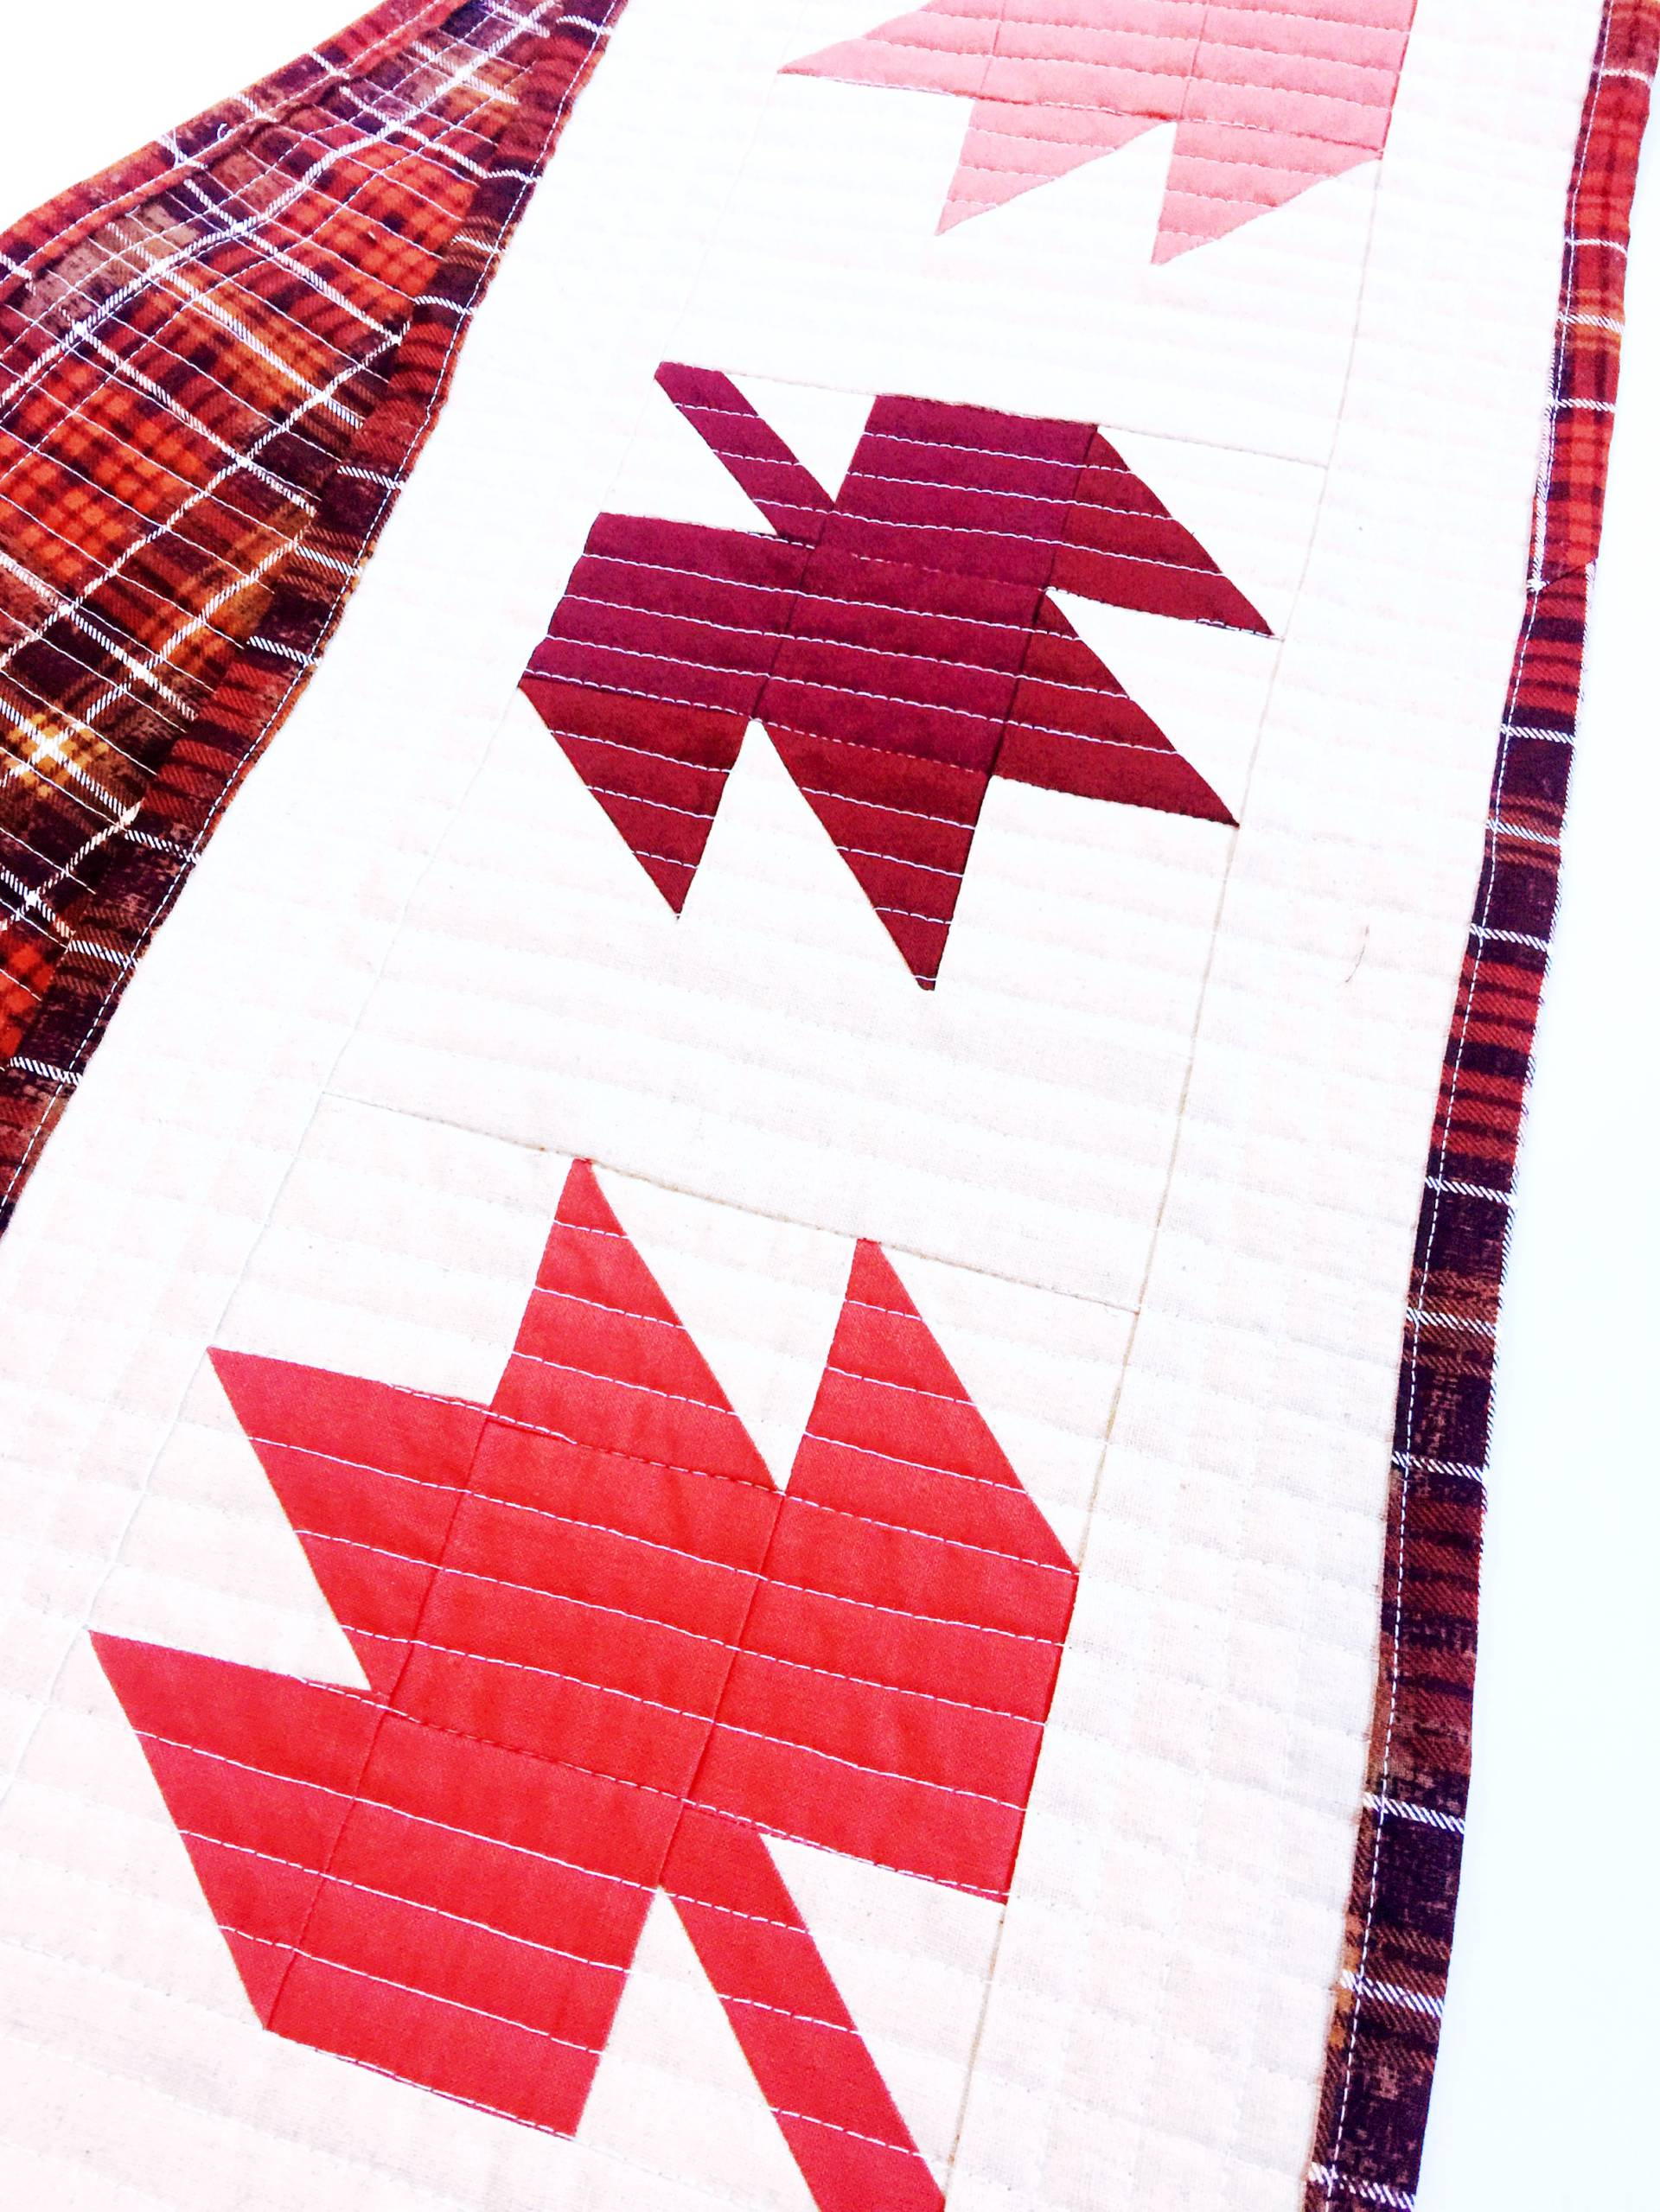 Autumn-themed table runner in solids with matchstick quilting